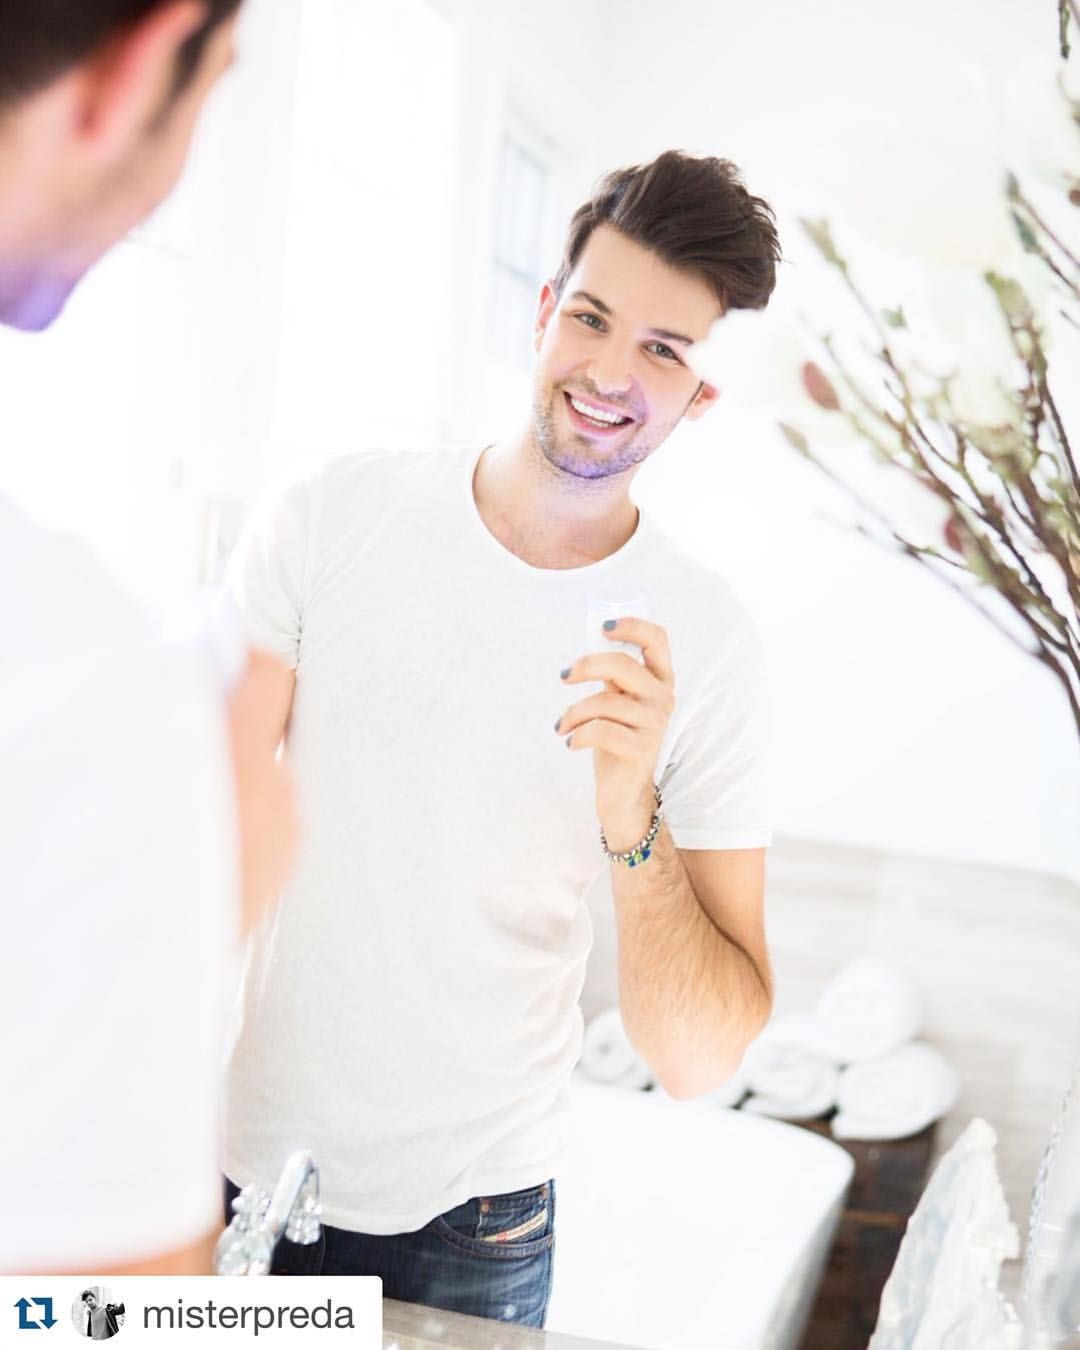 #Repost @misterpreda with @smilesciencesstreetteam ・・・ Oh hi didn't see you there  I've been really happy with my @smilesciences whitening kit! It's VEGAN, cruelty-free and made in the USA! You can use my coupon code MISTERPREDA at www.smilesciences.com and grab it for only $29! #smilesciences #whiteteeth #smile #mensfashion #instacute #writer #producer #journalist #loveit